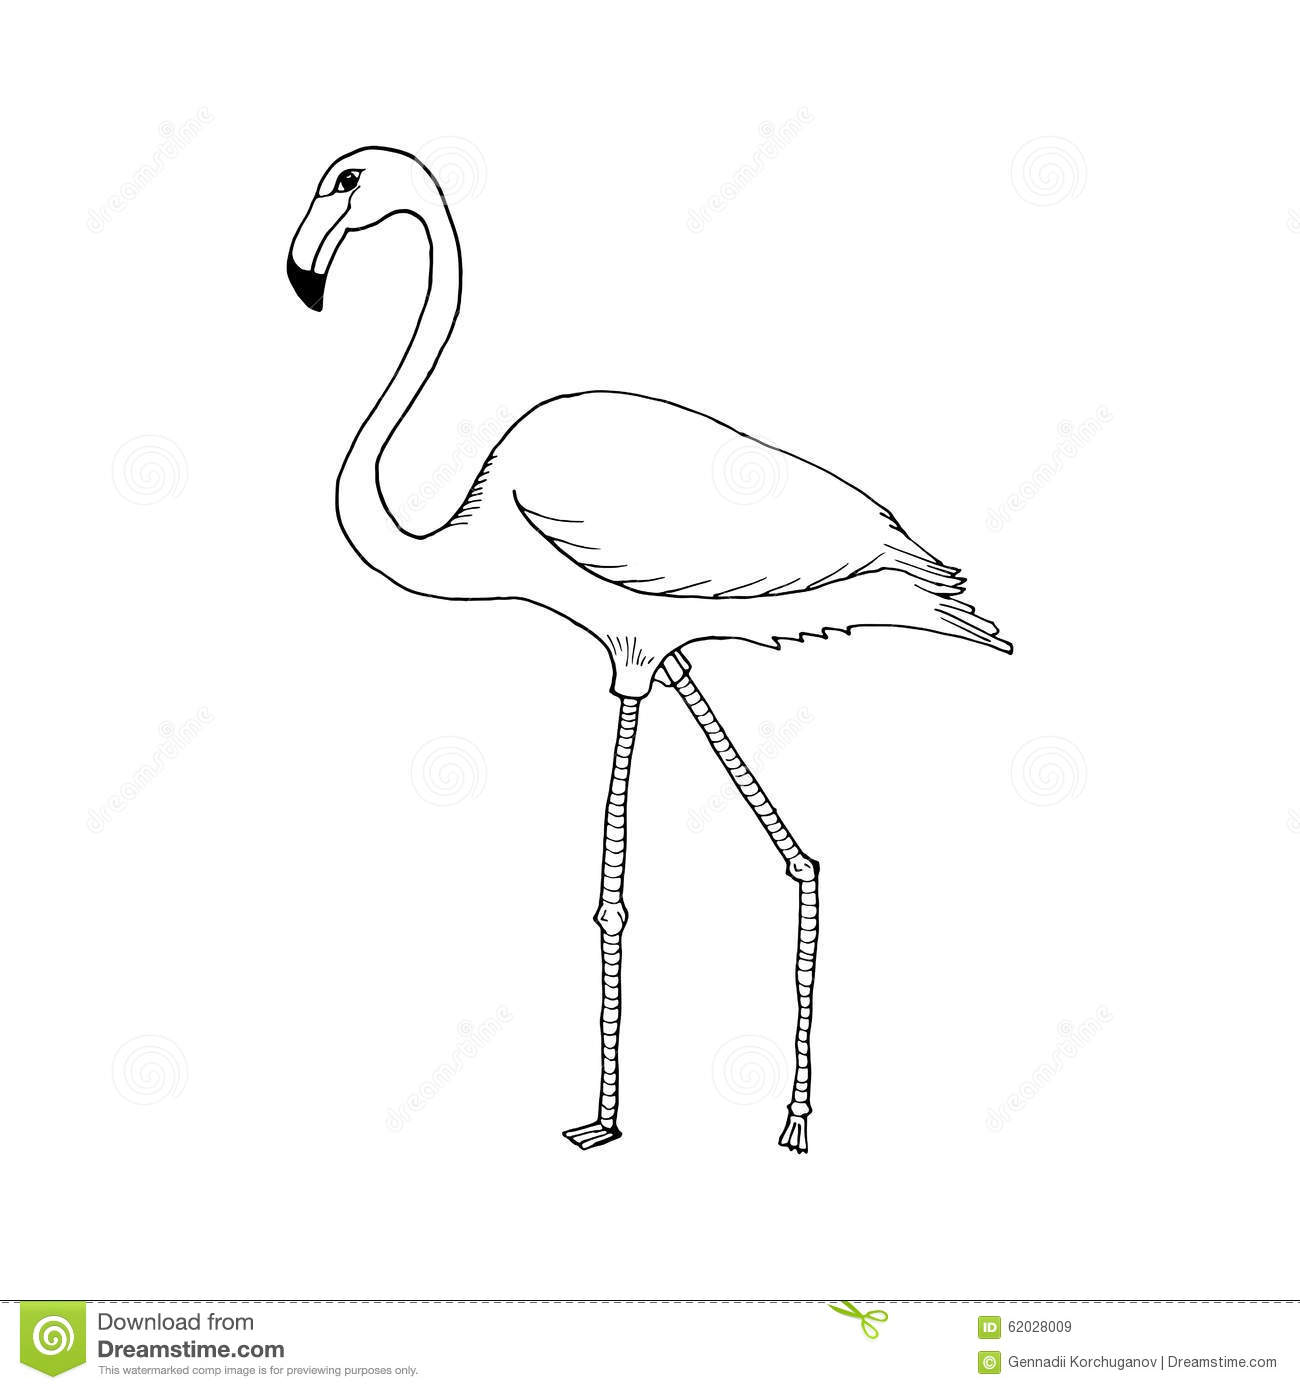 Flamingo beak template 28 images inspiration and realisation flamingo beak template draw flamingo style sketch on a black white stock pronofoot35fo Images